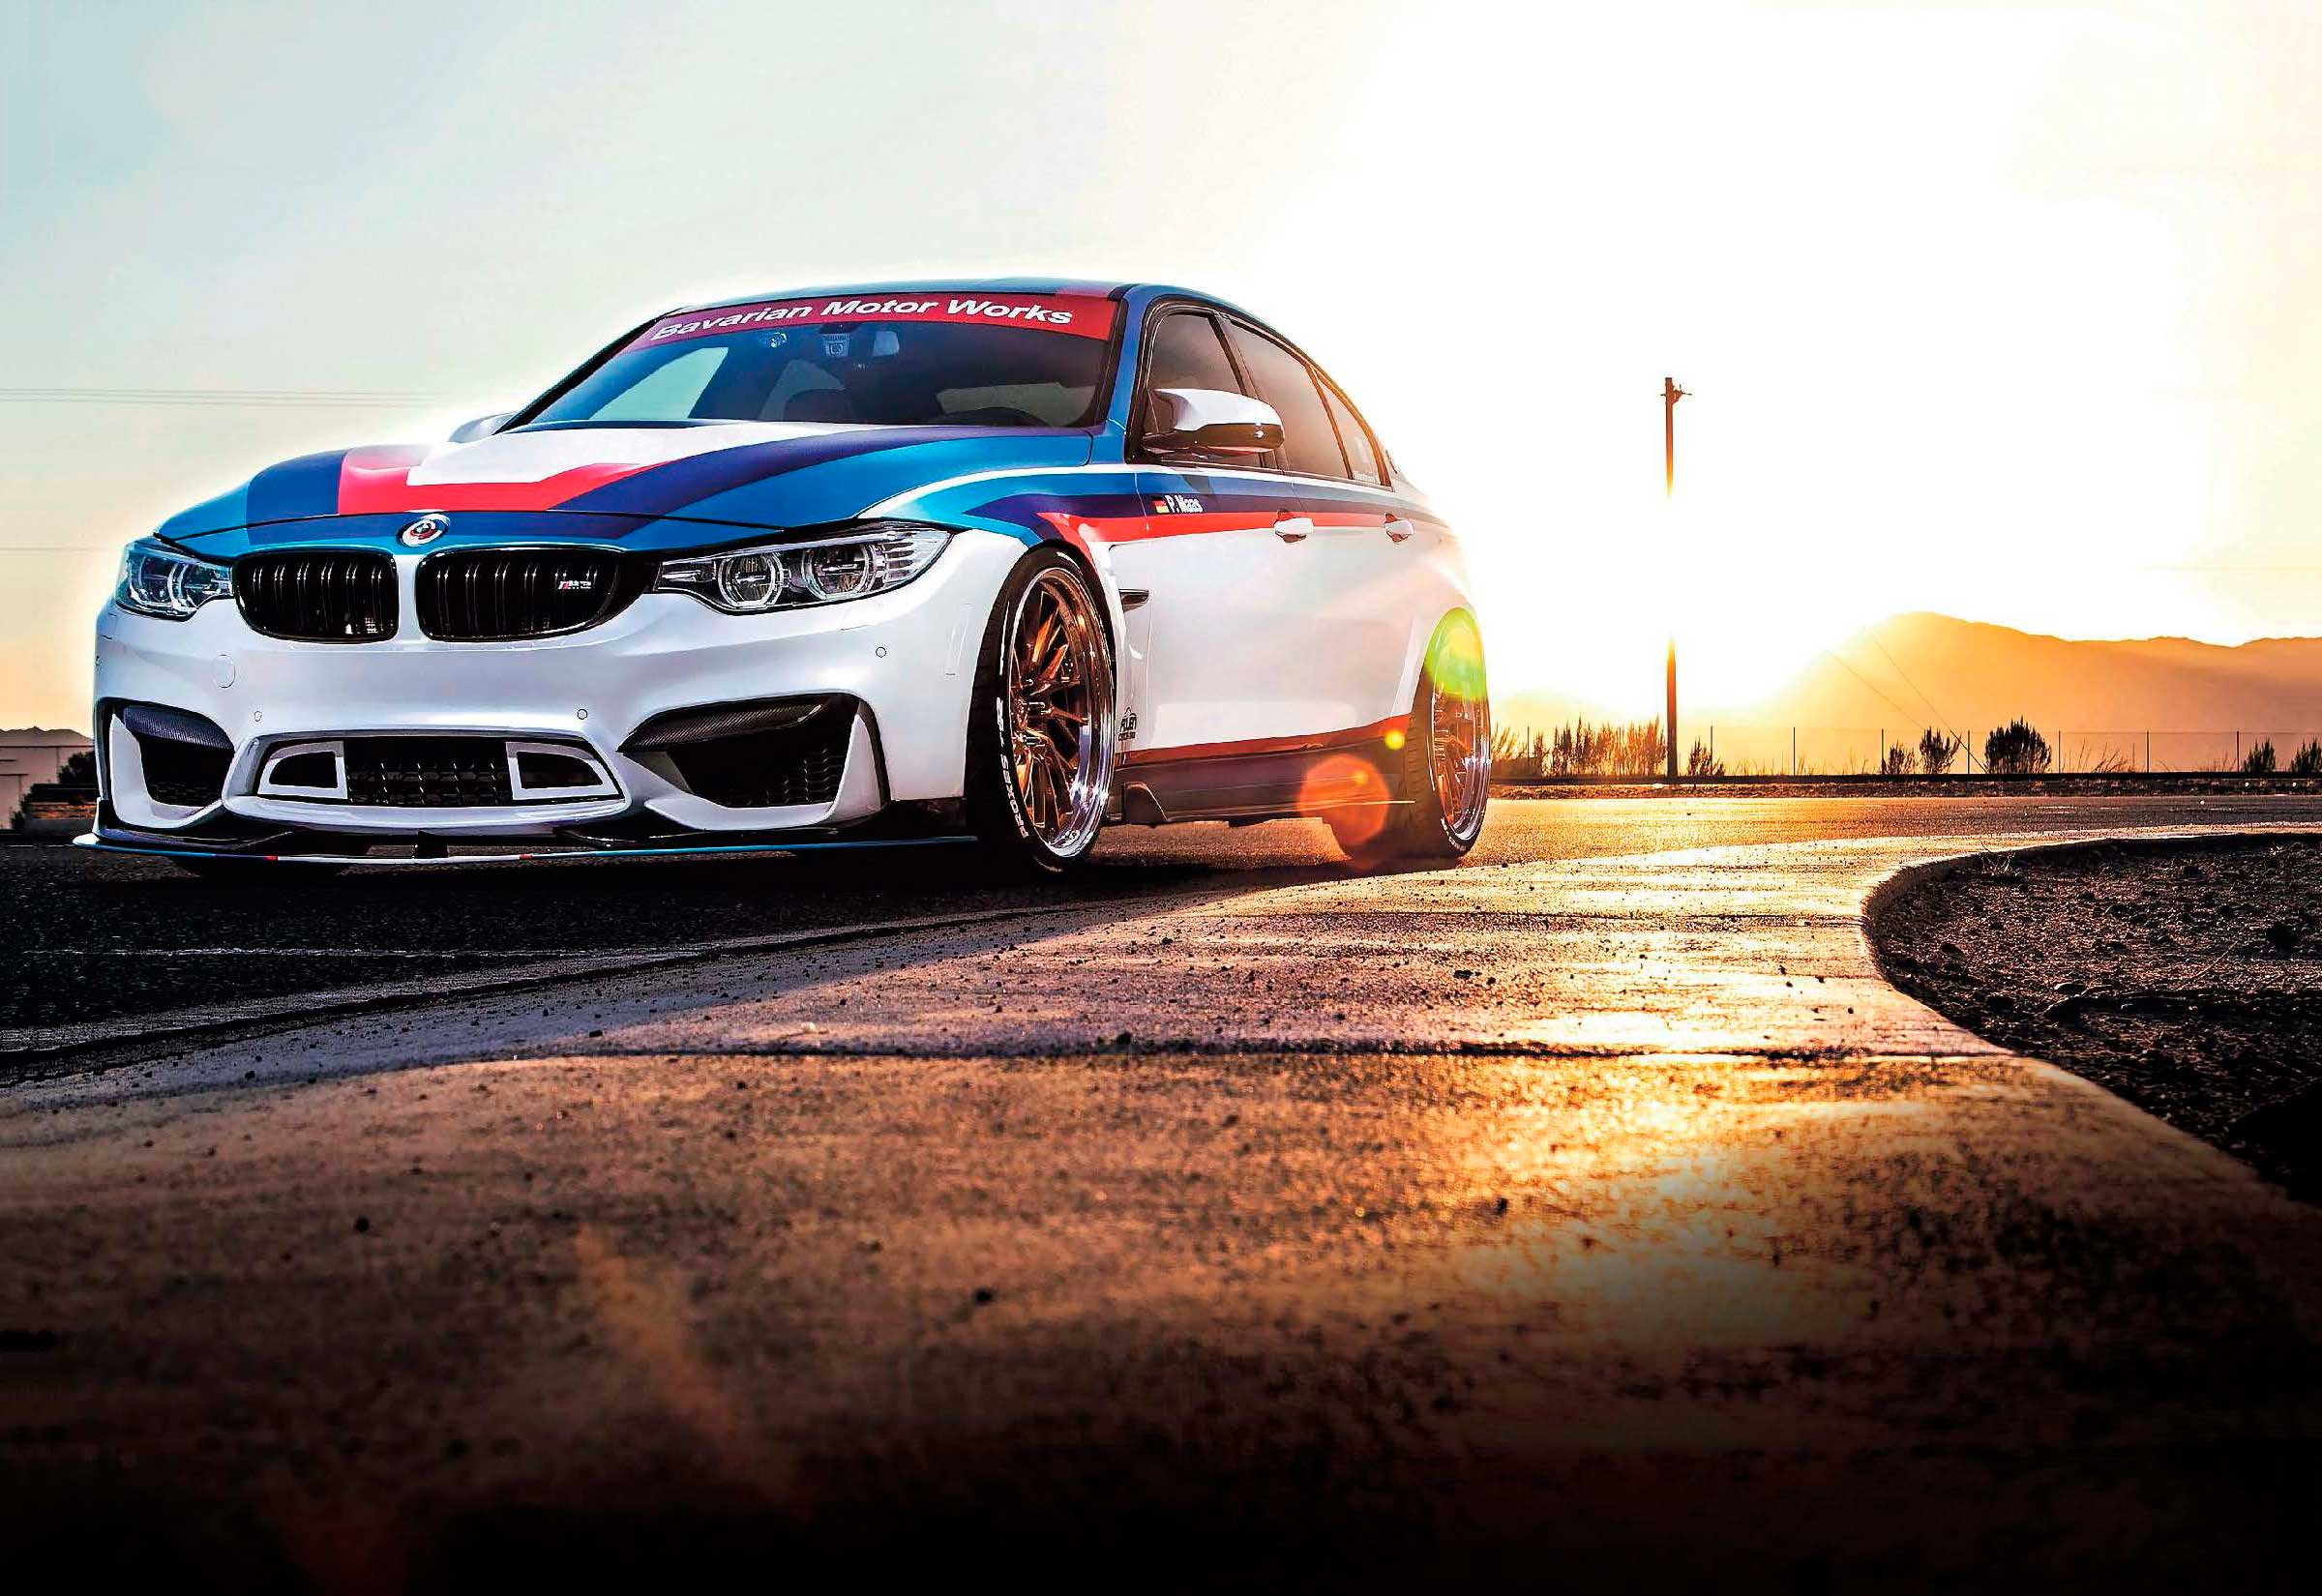 jaw dropping show stopping 650bhp bmw m3 f80 drive my blogs drive show stopping 650bhp bmw m3 f80